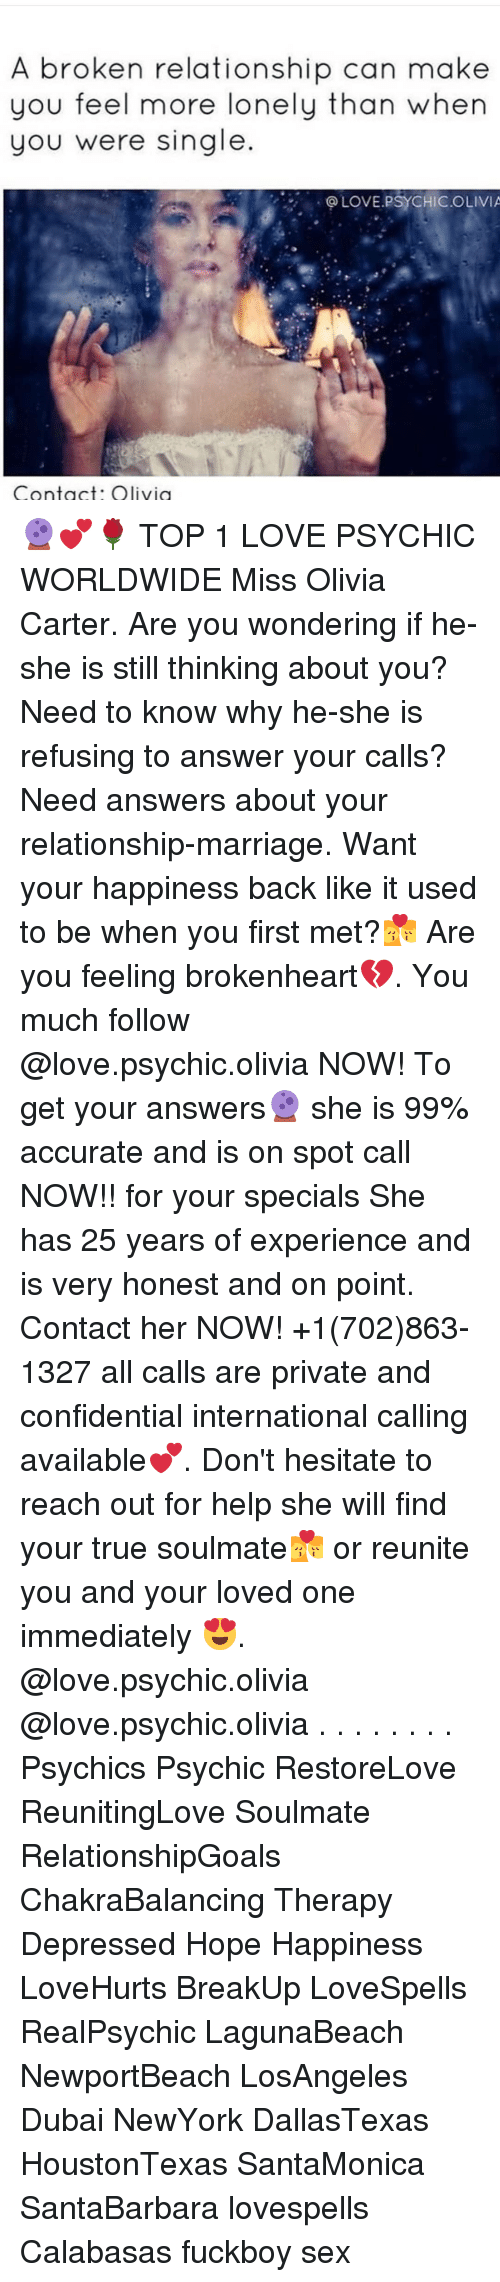 brokenheart: A broken relationship can make  you feel more lonely than when  you were single  LOVE.PSYCHICOLIVIA 🔮💕🌹 TOP 1 LOVE PSYCHIC WORLDWIDE Miss Olivia Carter. Are you wondering if he-she is still thinking about you? Need to know why he-she is refusing to answer your calls? Need answers about your relationship-marriage. Want your happiness back like it used to be when you first met?💏 Are you feeling brokenheart💔. You much follow @love.psychic.olivia NOW! To get your answers🔮 she is 99% accurate and is on spot call NOW!! for your specials She has 25 years of experience and is very honest and on point. Contact her NOW! +1(702)863-1327 all calls are private and confidential international calling available💕. Don't hesitate to reach out for help she will find your true soulmate💏 or reunite you and your loved one immediately 😍. @love.psychic.olivia @love.psychic.olivia . . . . . . . . Psychics Psychic RestoreLove ReunitingLove Soulmate RelationshipGoals ChakraBalancing Therapy Depressed Hope Happiness LoveHurts BreakUp LoveSpells RealPsychic LagunaBeach NewportBeach LosAngeles Dubai NewYork DallasTexas HoustonTexas SantaMonica SantaBarbara lovespells Calabasas fuckboy sex